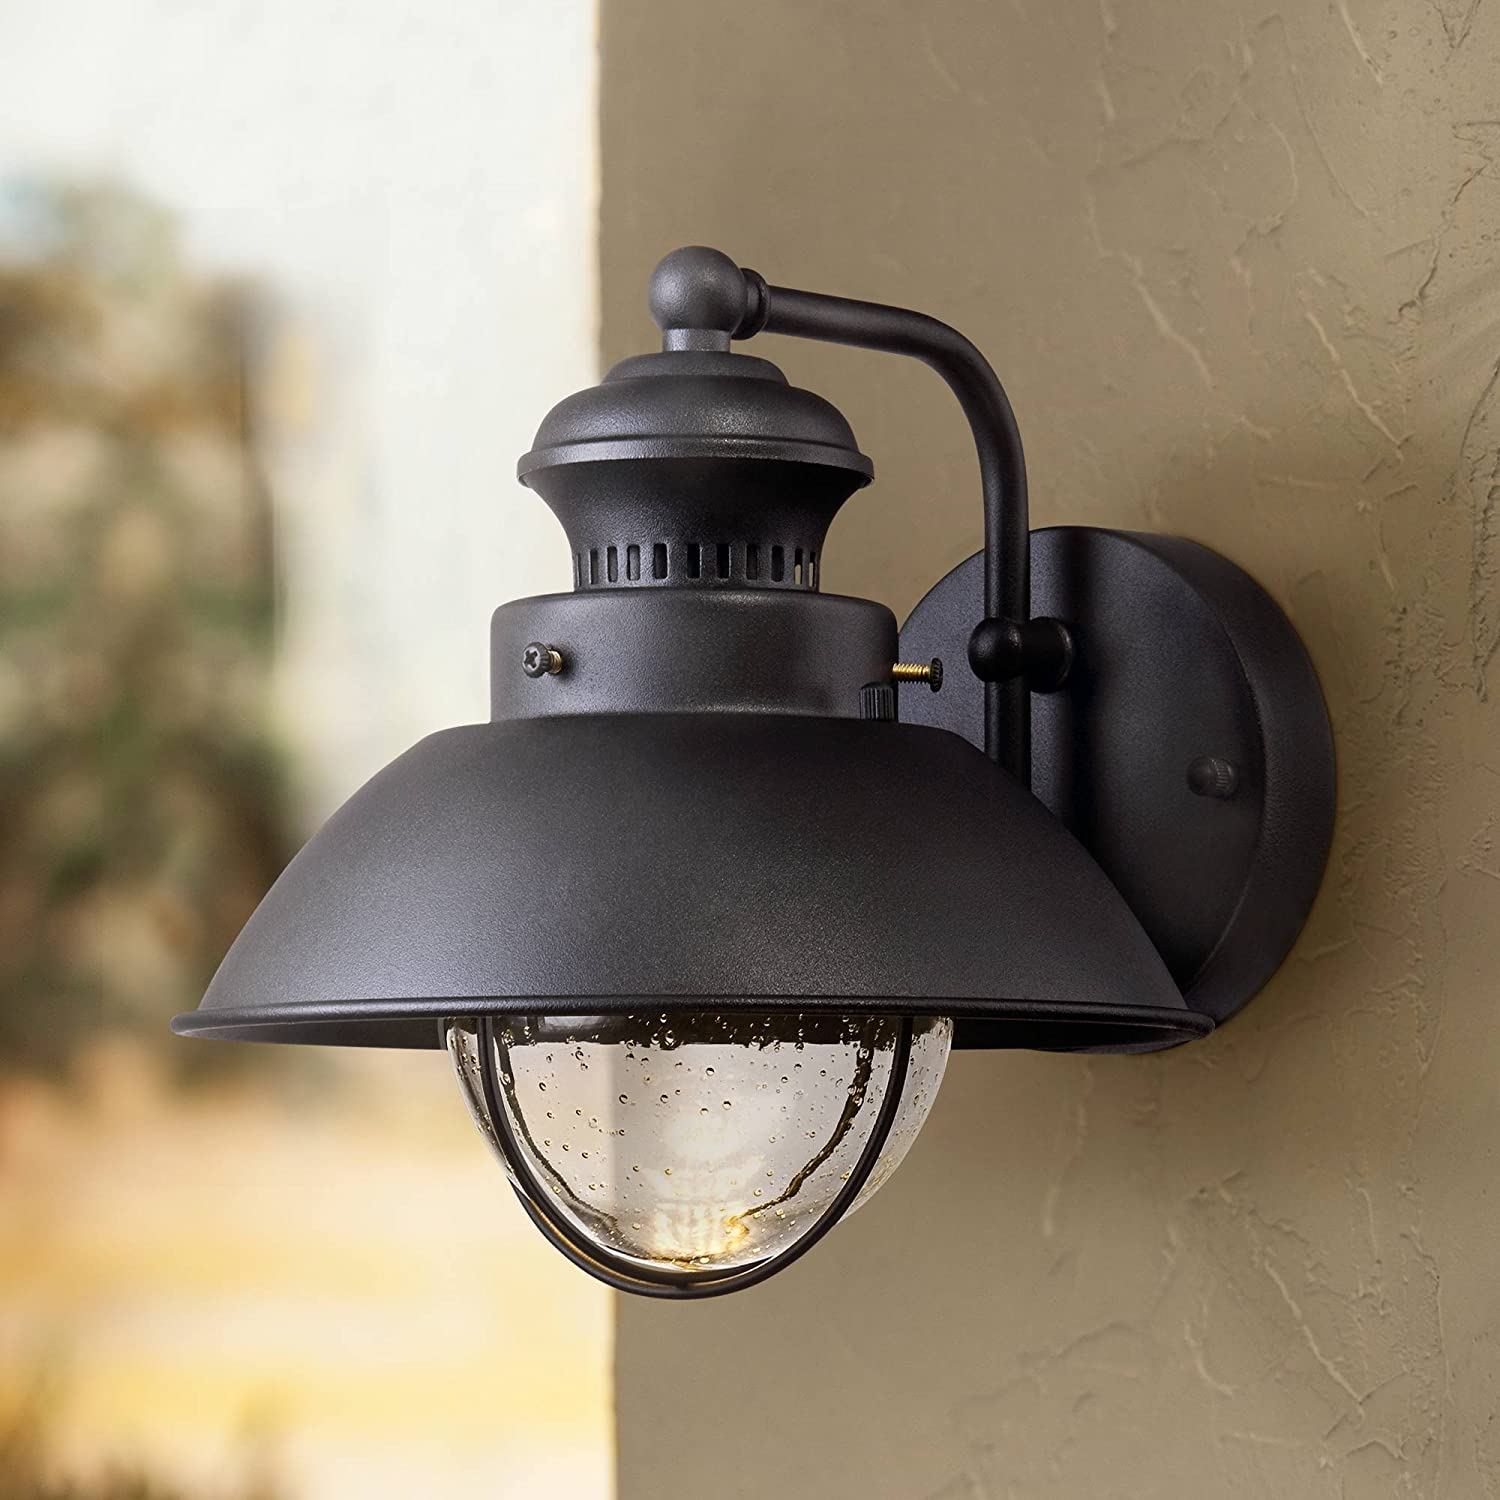 Fordham Farmhouse Selling rankings Rustic Industrial Outdoor Light Wall Fixture SEAL limited product L